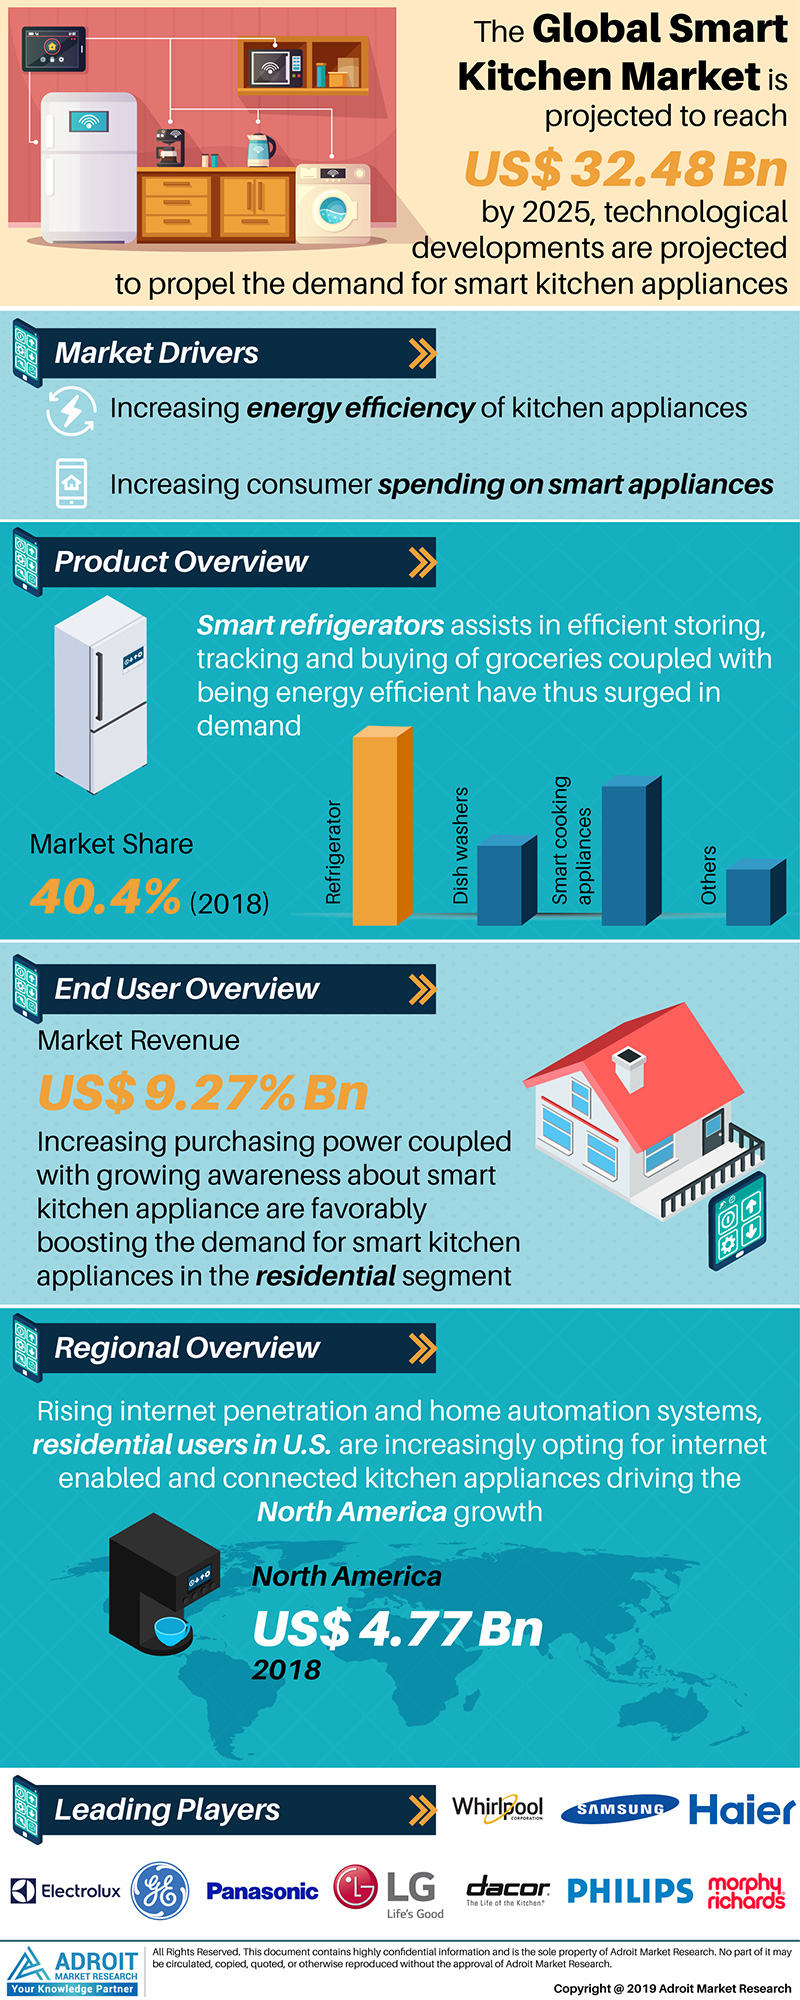 Global Smart Kitchen Market Size 2017 By Product type, End-Use, Region and Forecast 2018 to 2025